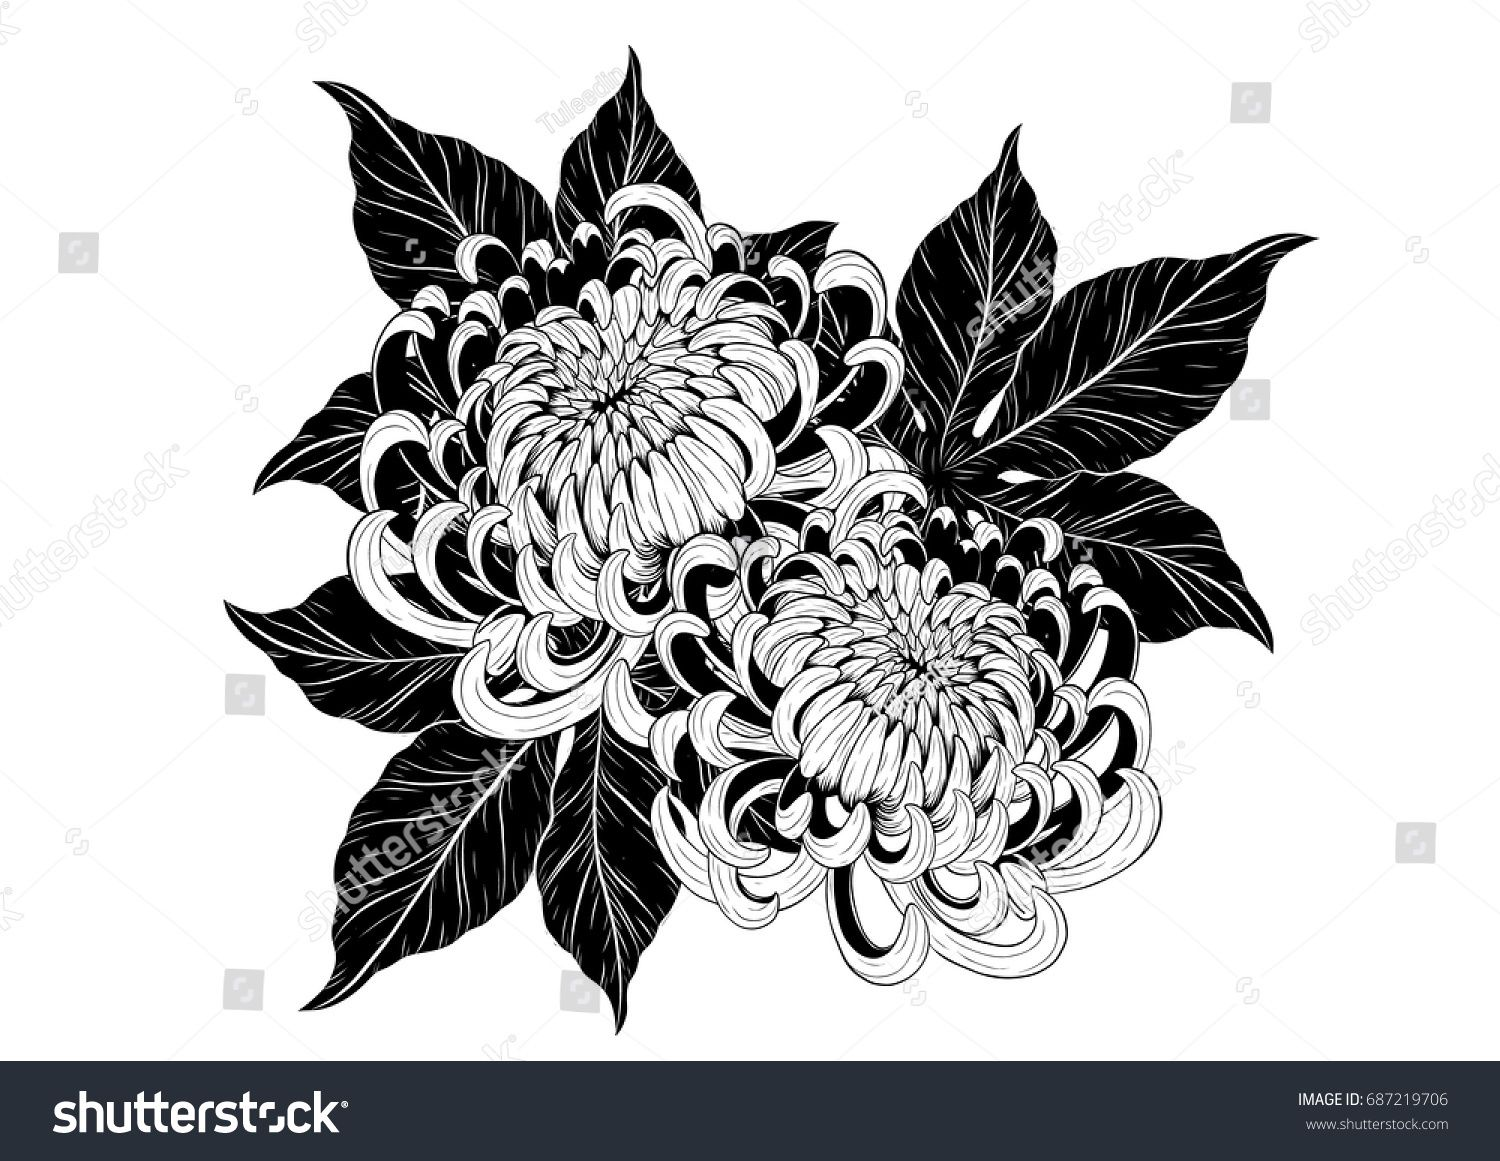 Chrysanthemum Vector On White Background Chrysanthemum Flower By Hand Drawing Flower Tattoo In 2020 Chrysanthemum Tattoo Japanese Flower Tattoo Chrysanthemum Drawing